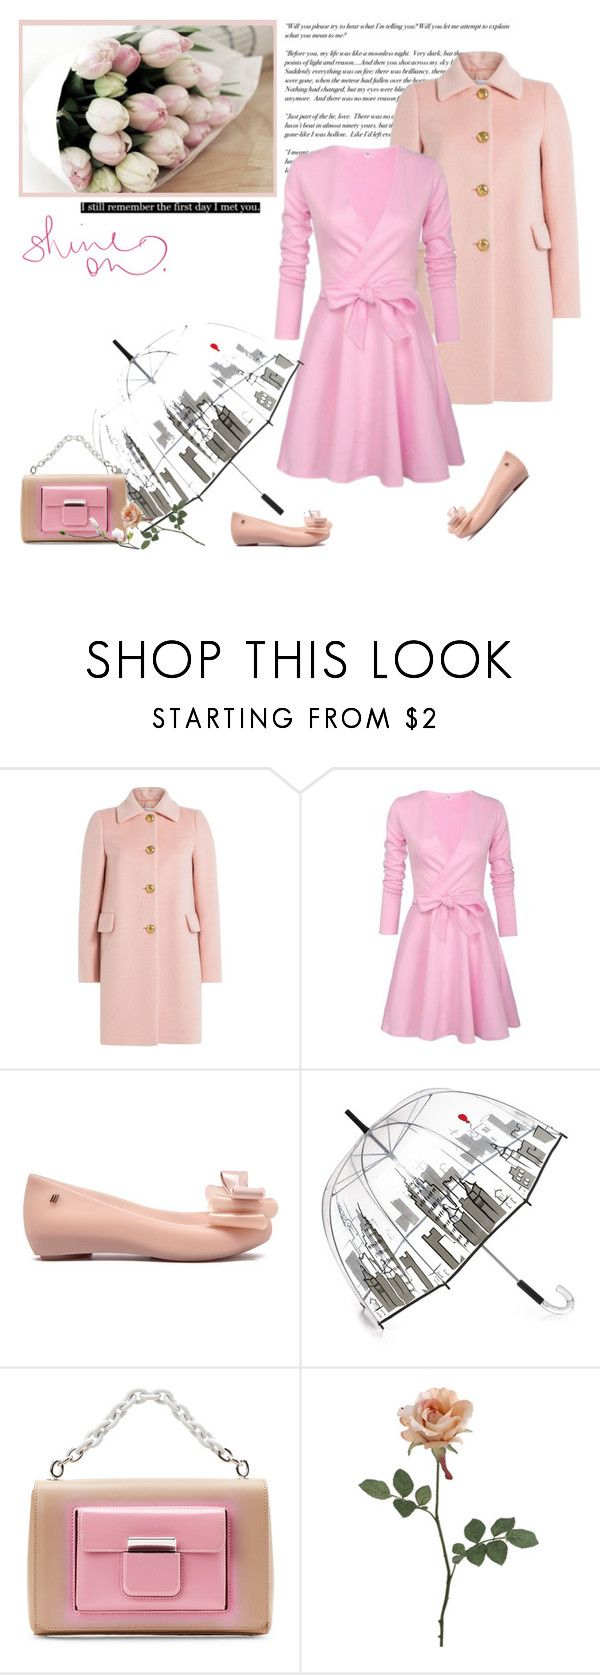 """Spring Time"" by minni ❤ liked on Polyvore featuring Cullen, RED Valentino, Felix Rey and Balenciaga"